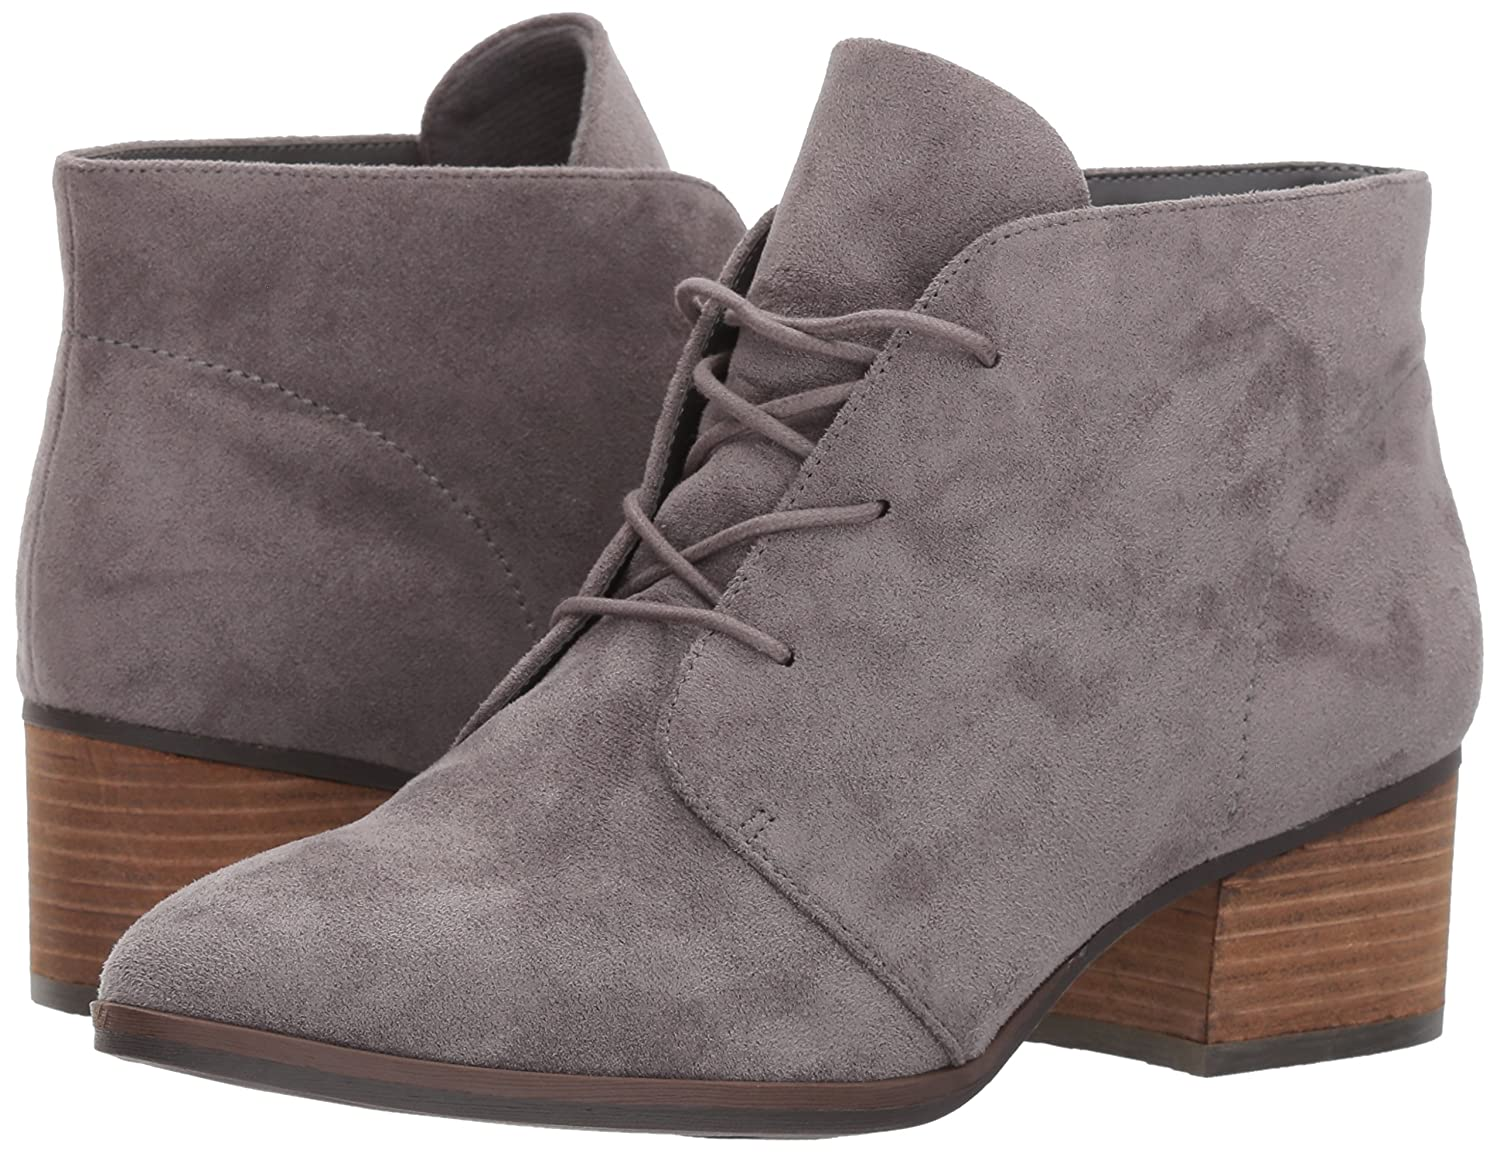 Dr. Scholl's Shoes W Women's Turning Boot B0724Z2NWJ 10 W Shoes US|Grey Microfiber 41c129